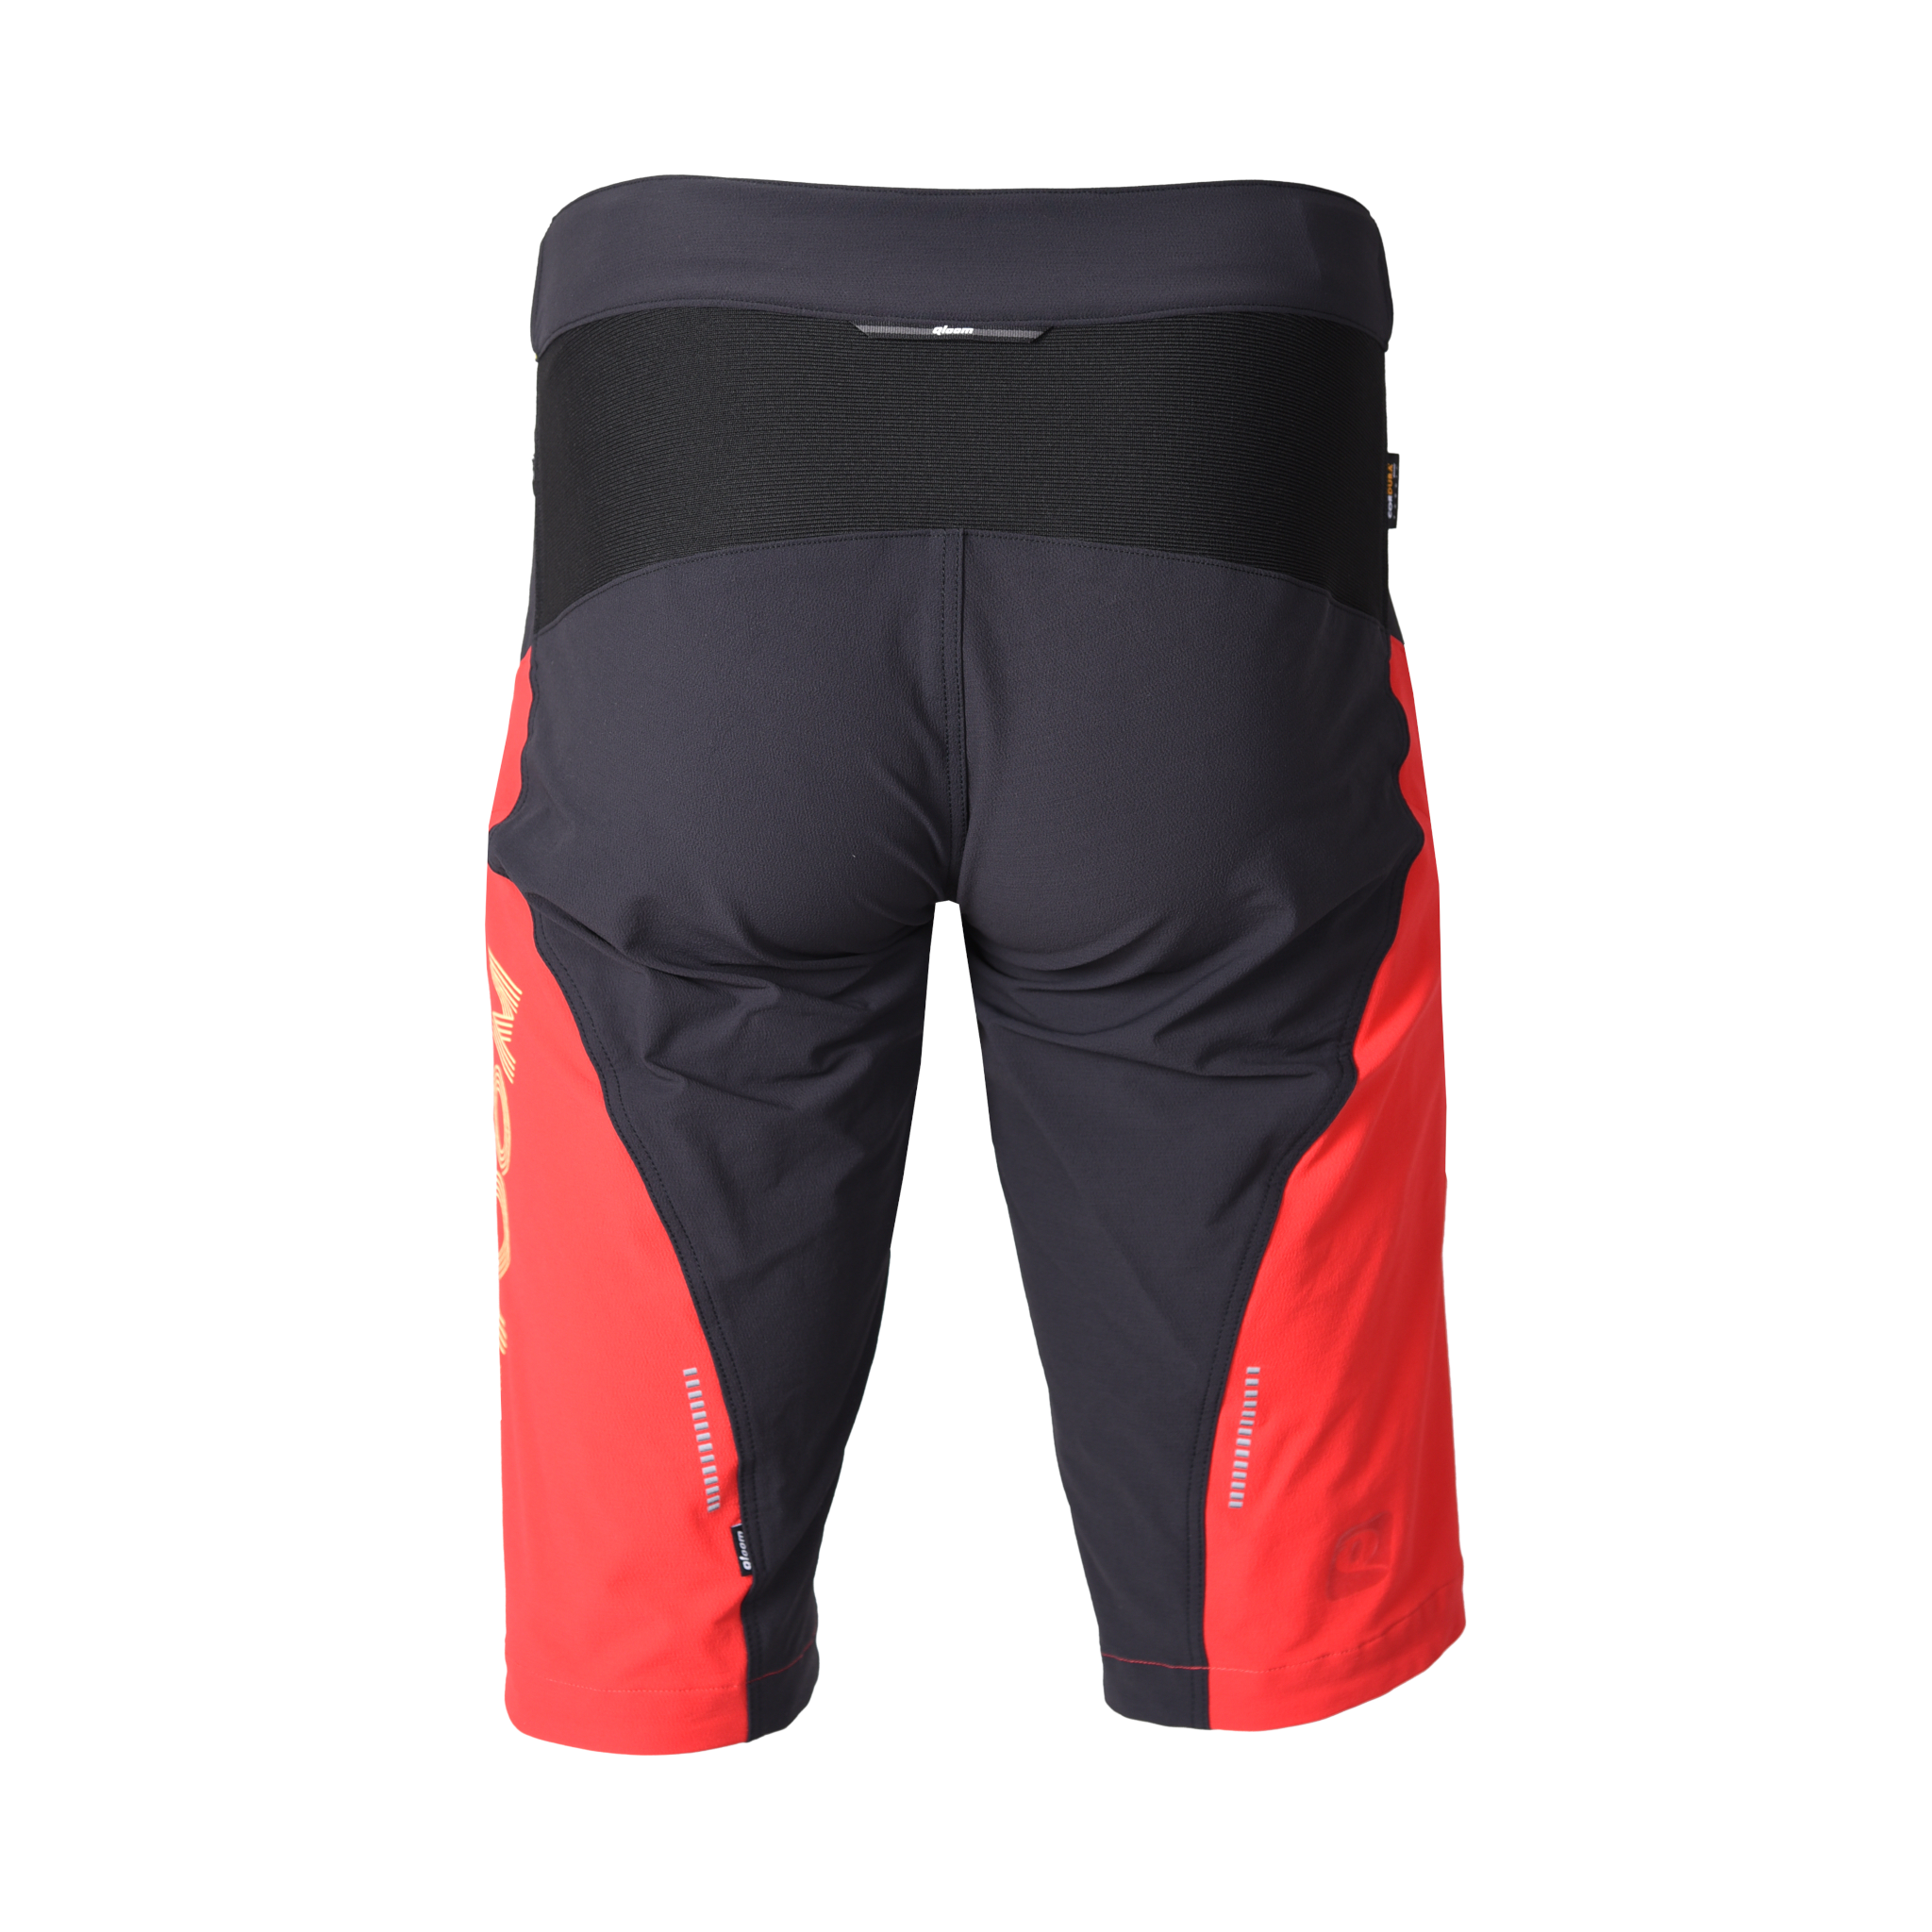 Avalaon Enduro Shorts